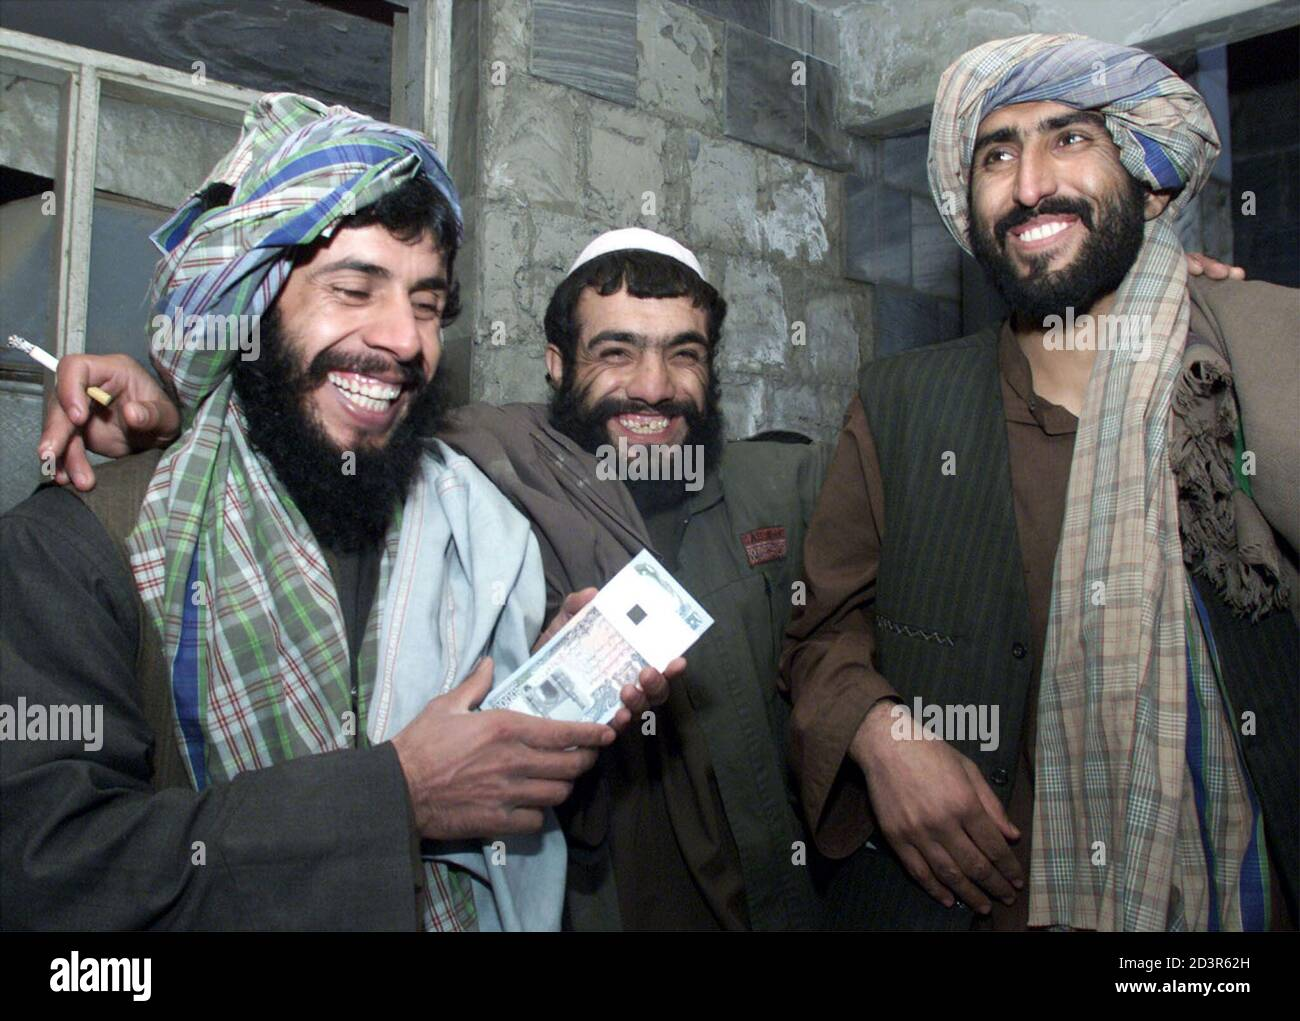 Page 5 - Icrc Afghanistan High Resolution Stock Photography and Images -  Alamy